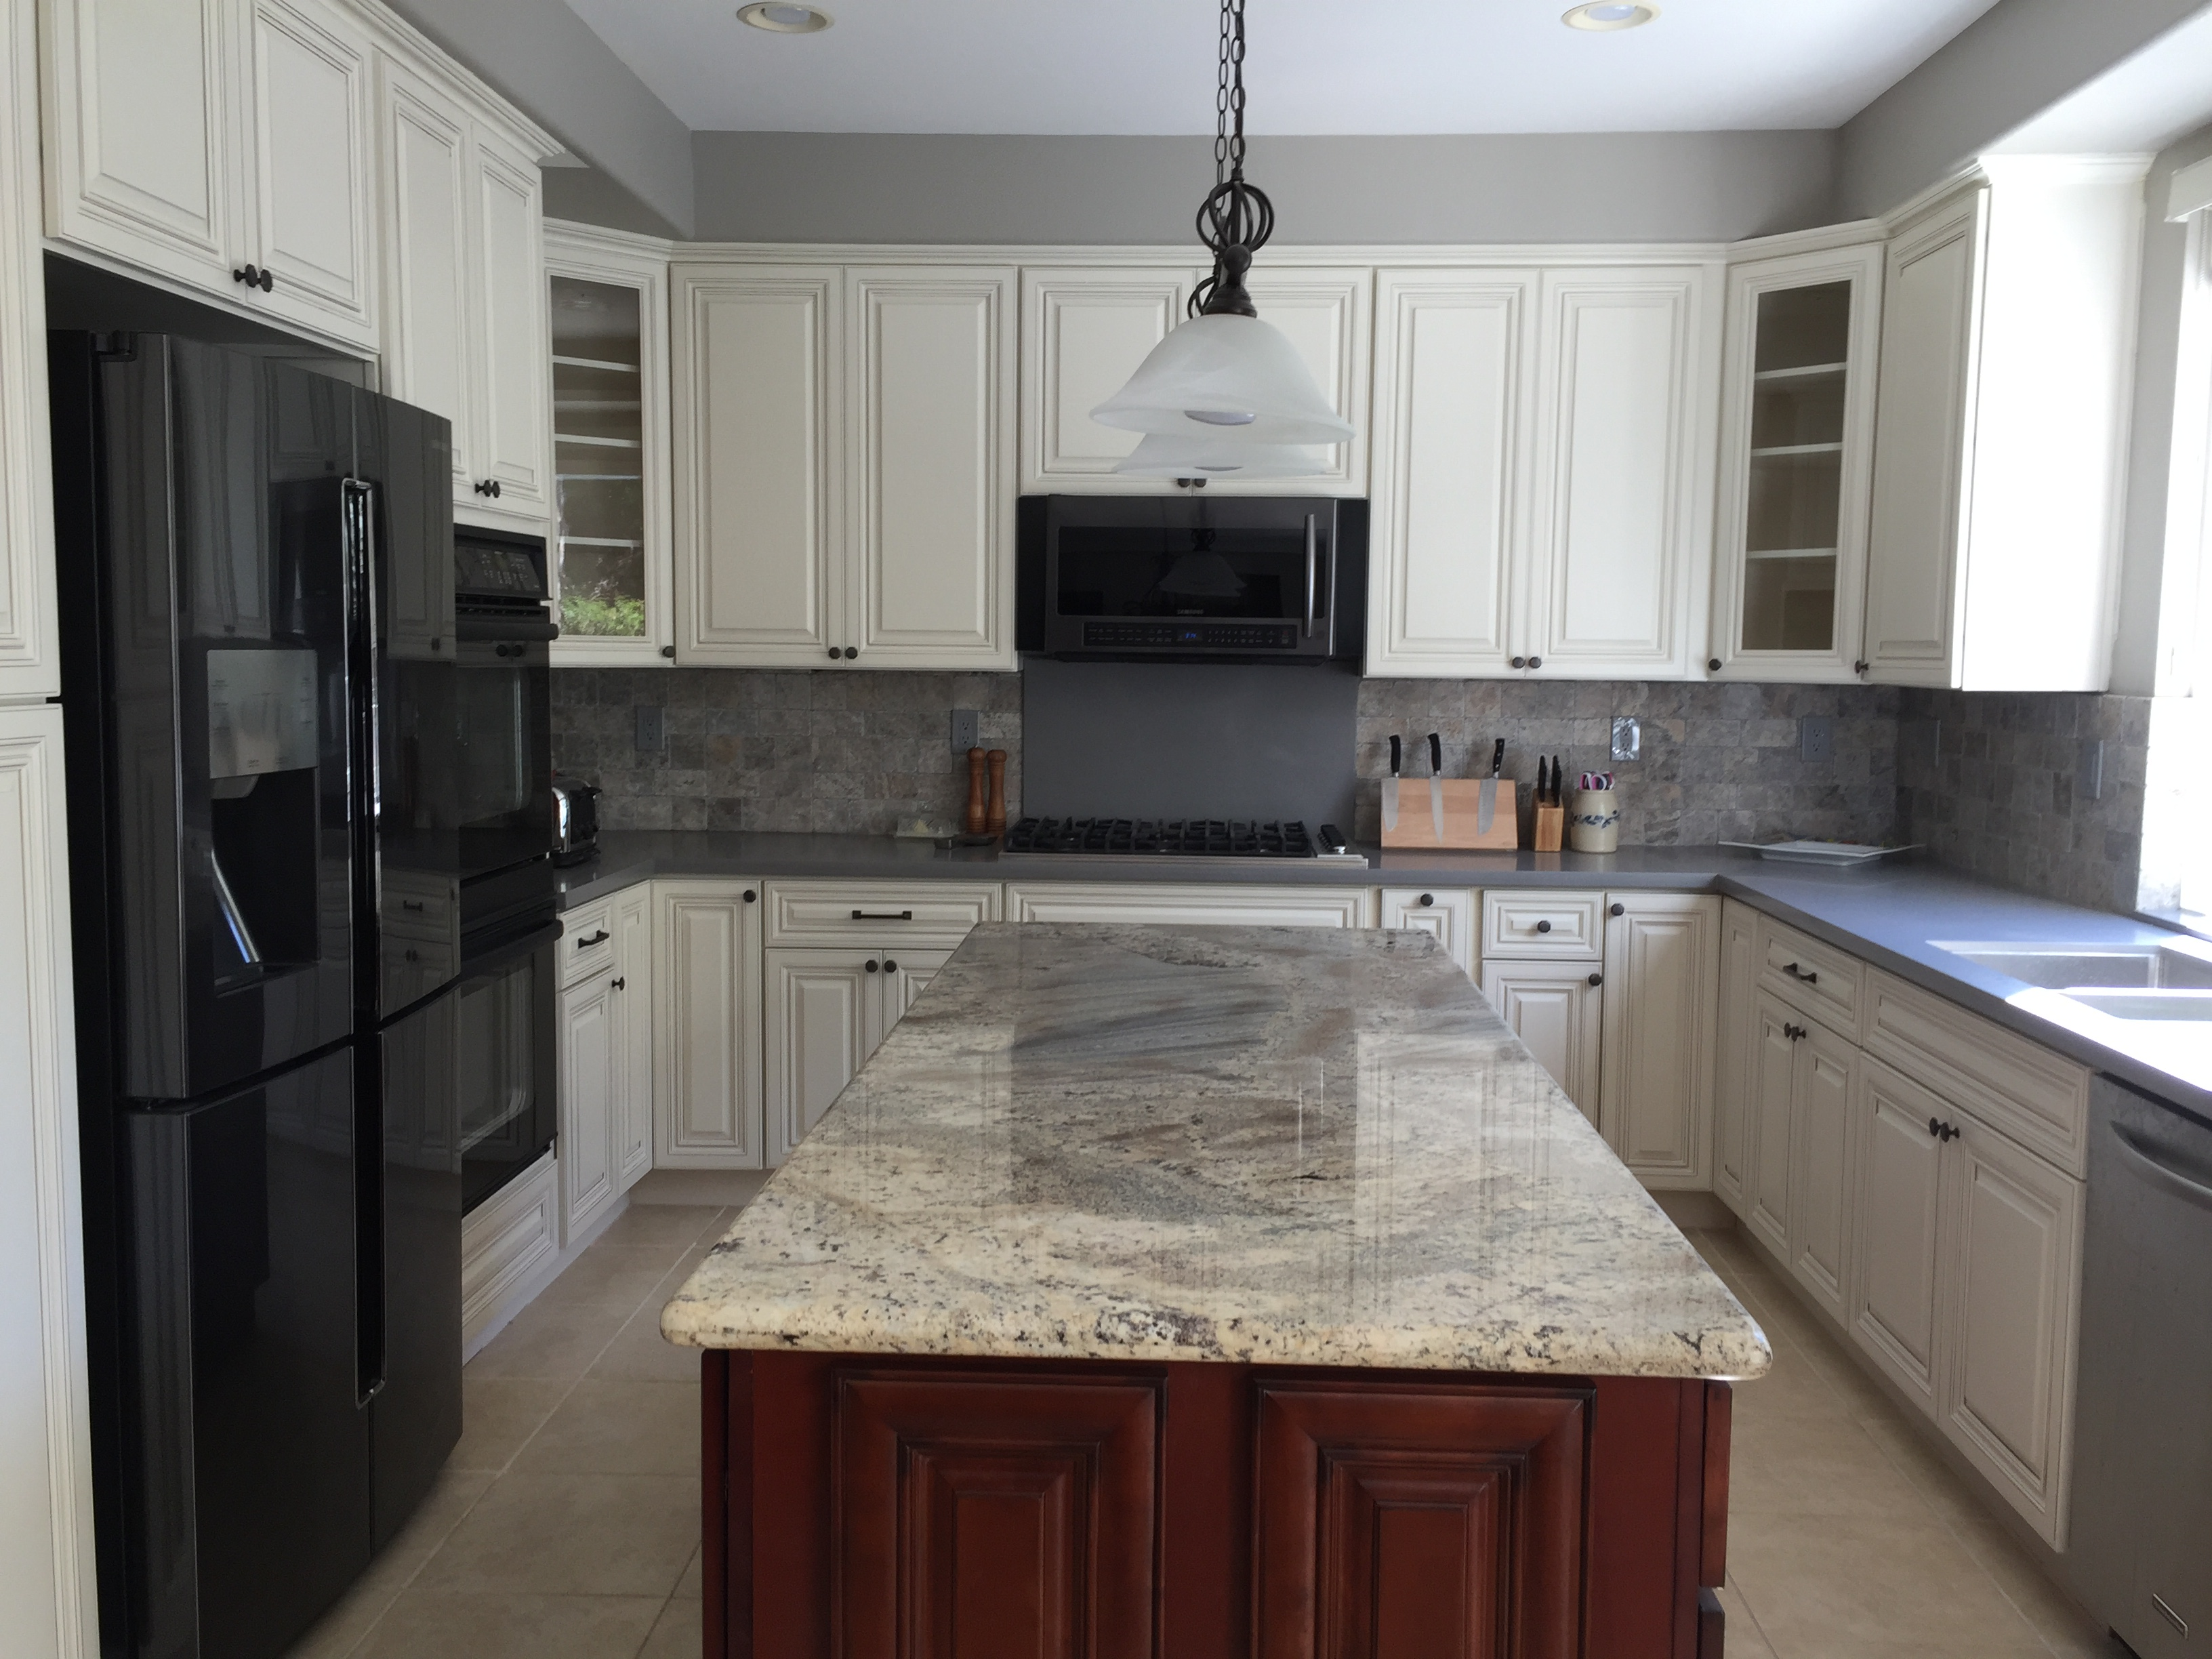 antique white cabinets granite quartz countertops stevenson ranch